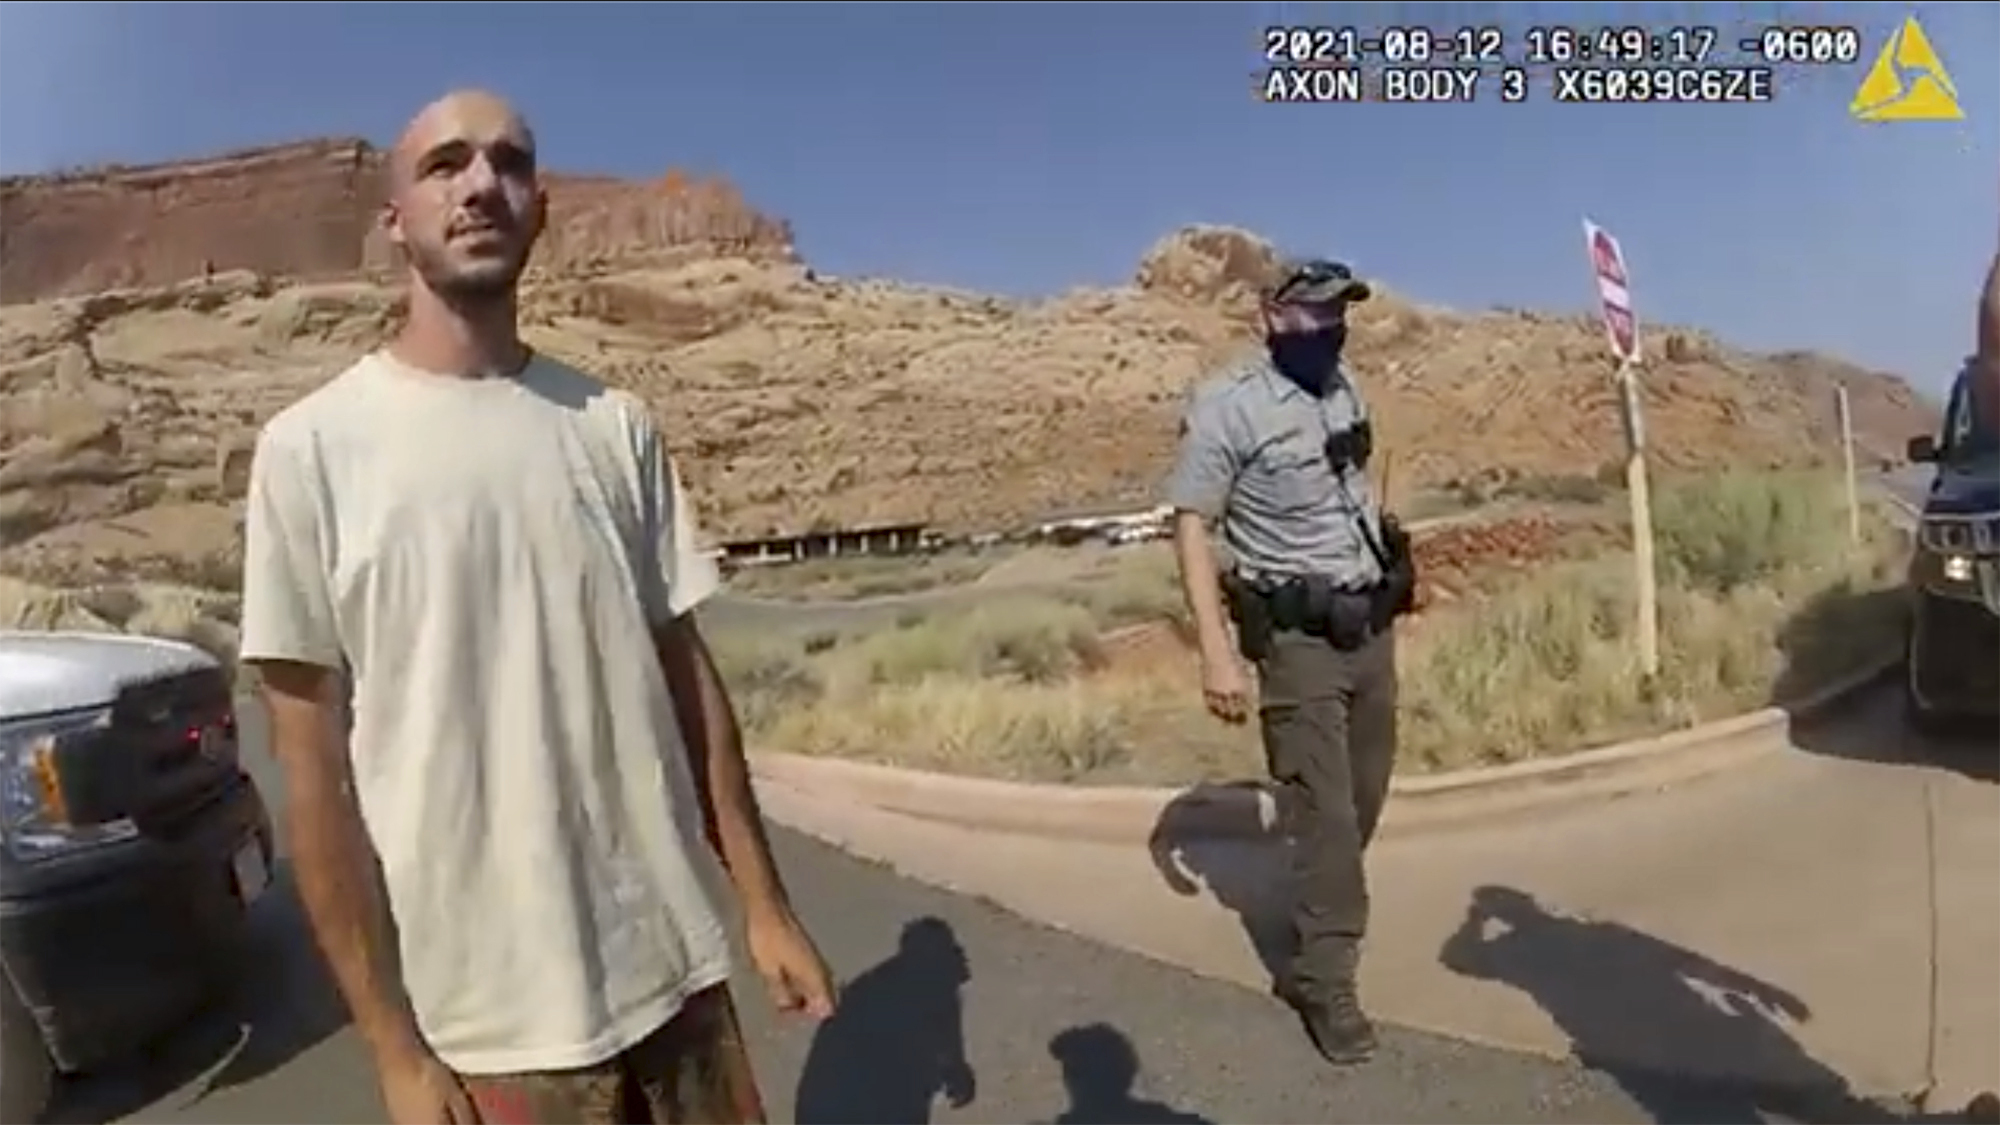 """This police camera video provided by The Moab Police Department shows Brian Laundrie talking to a police officer after police pulled over the van he was traveling in with his girlfriend, Gabrielle """"Gabby"""" Petito, near the entrance to Arches National Park on Aug. 12, 2021. (The Moab Police Department via AP)"""